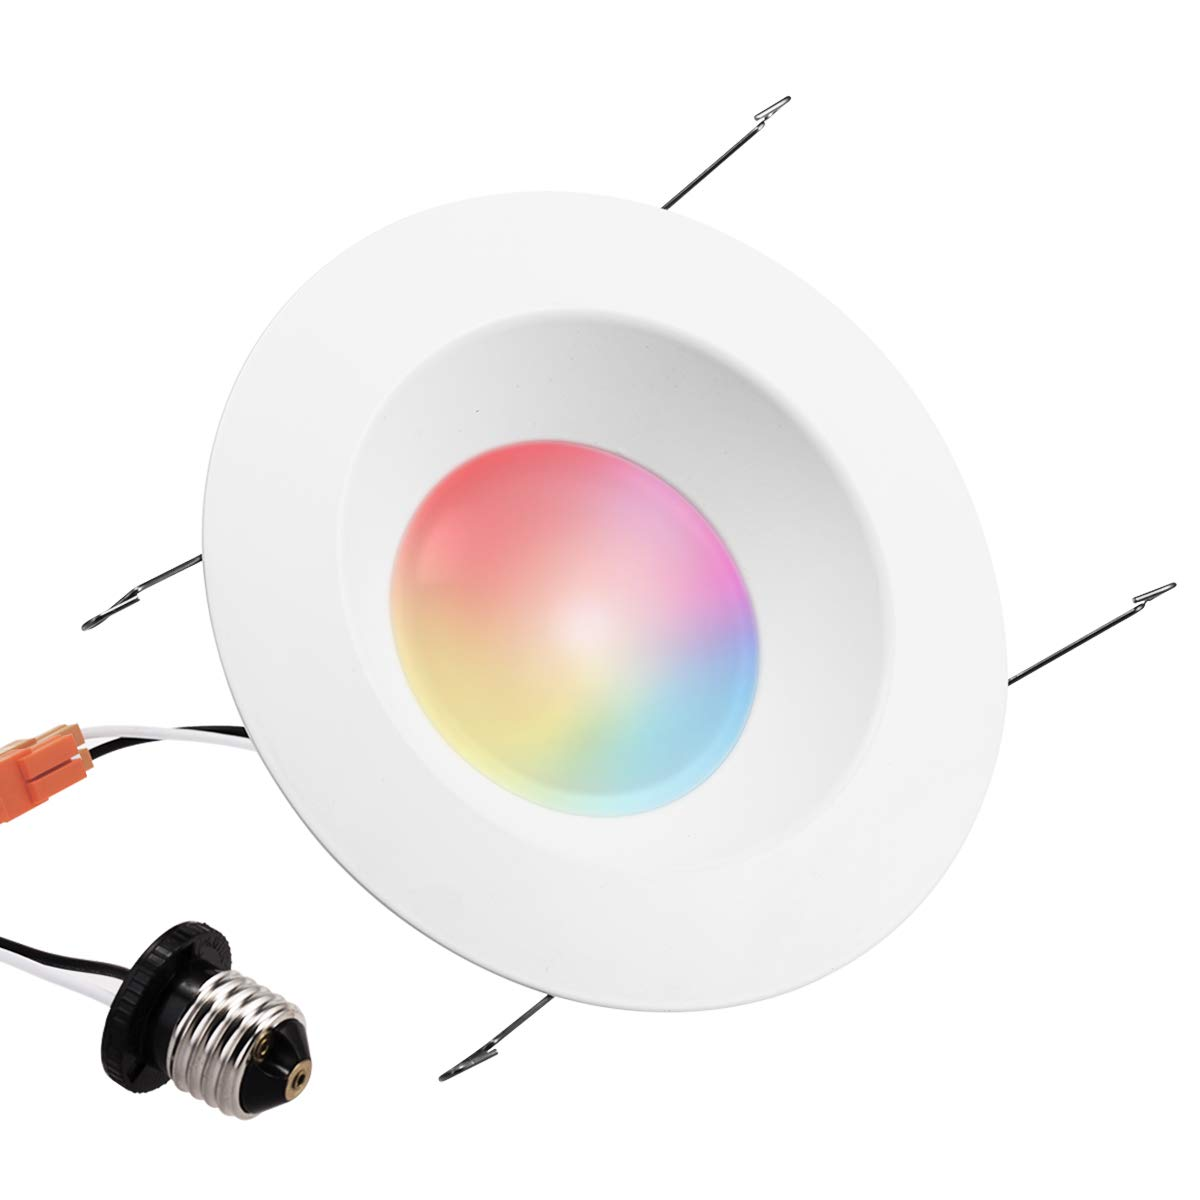 LOHAS LED Downlight, Smart Wi-Fi Light, Multicolored(2000k-9000k), Voice Control, Smartphone Controlled, E26 Base, 6 Inch Retrofit downlights, Dimmable 15W(80 Watt Equivalent) Recessed Lighting